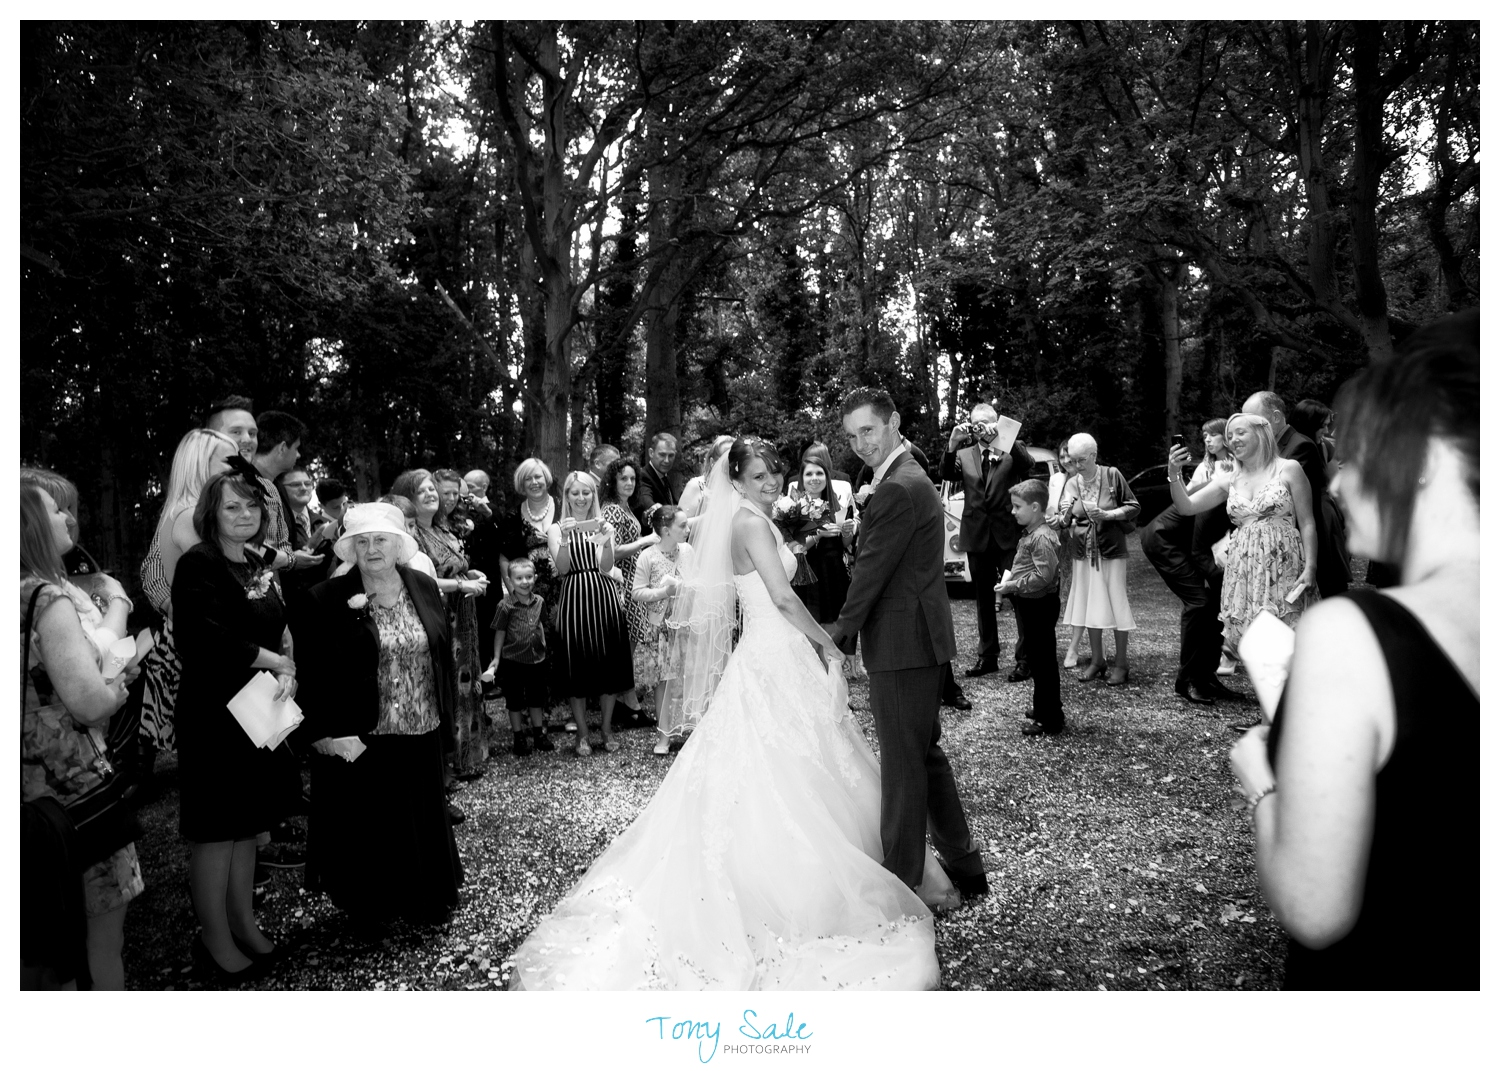 Beautiful black & white image of the bride and groom